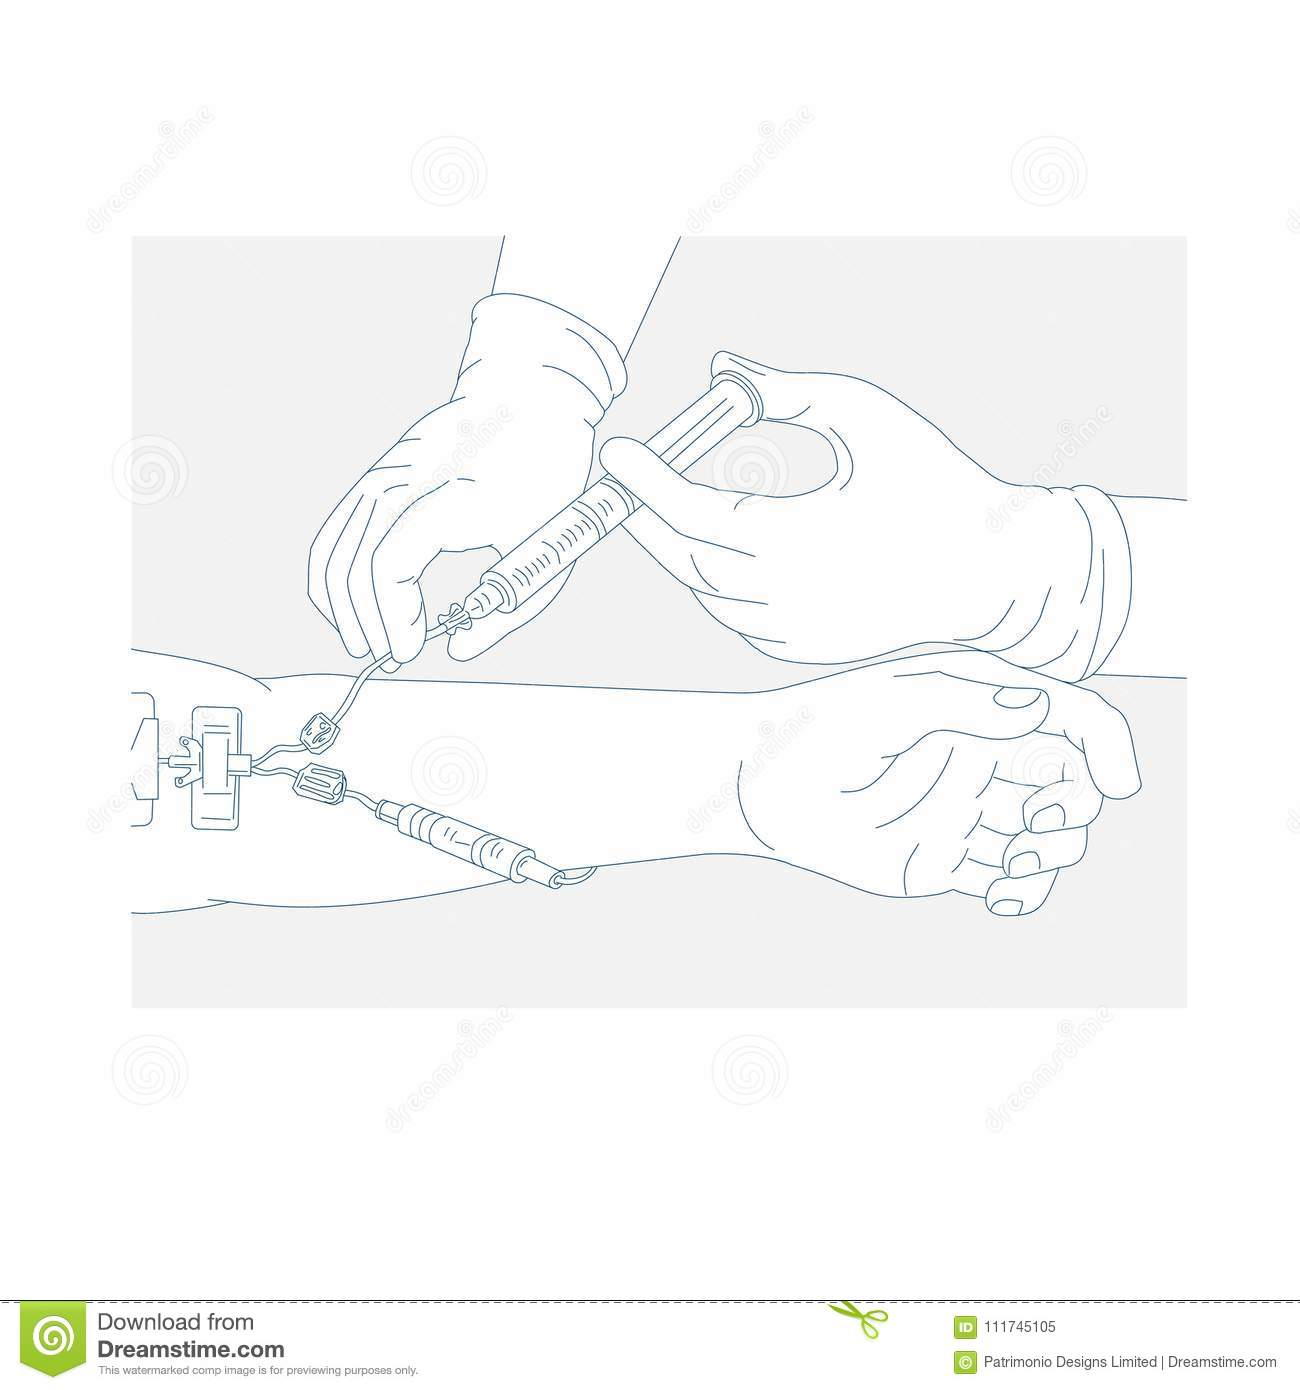 Drawing Of Catheter Insertion Into Heart Cartoon Vector